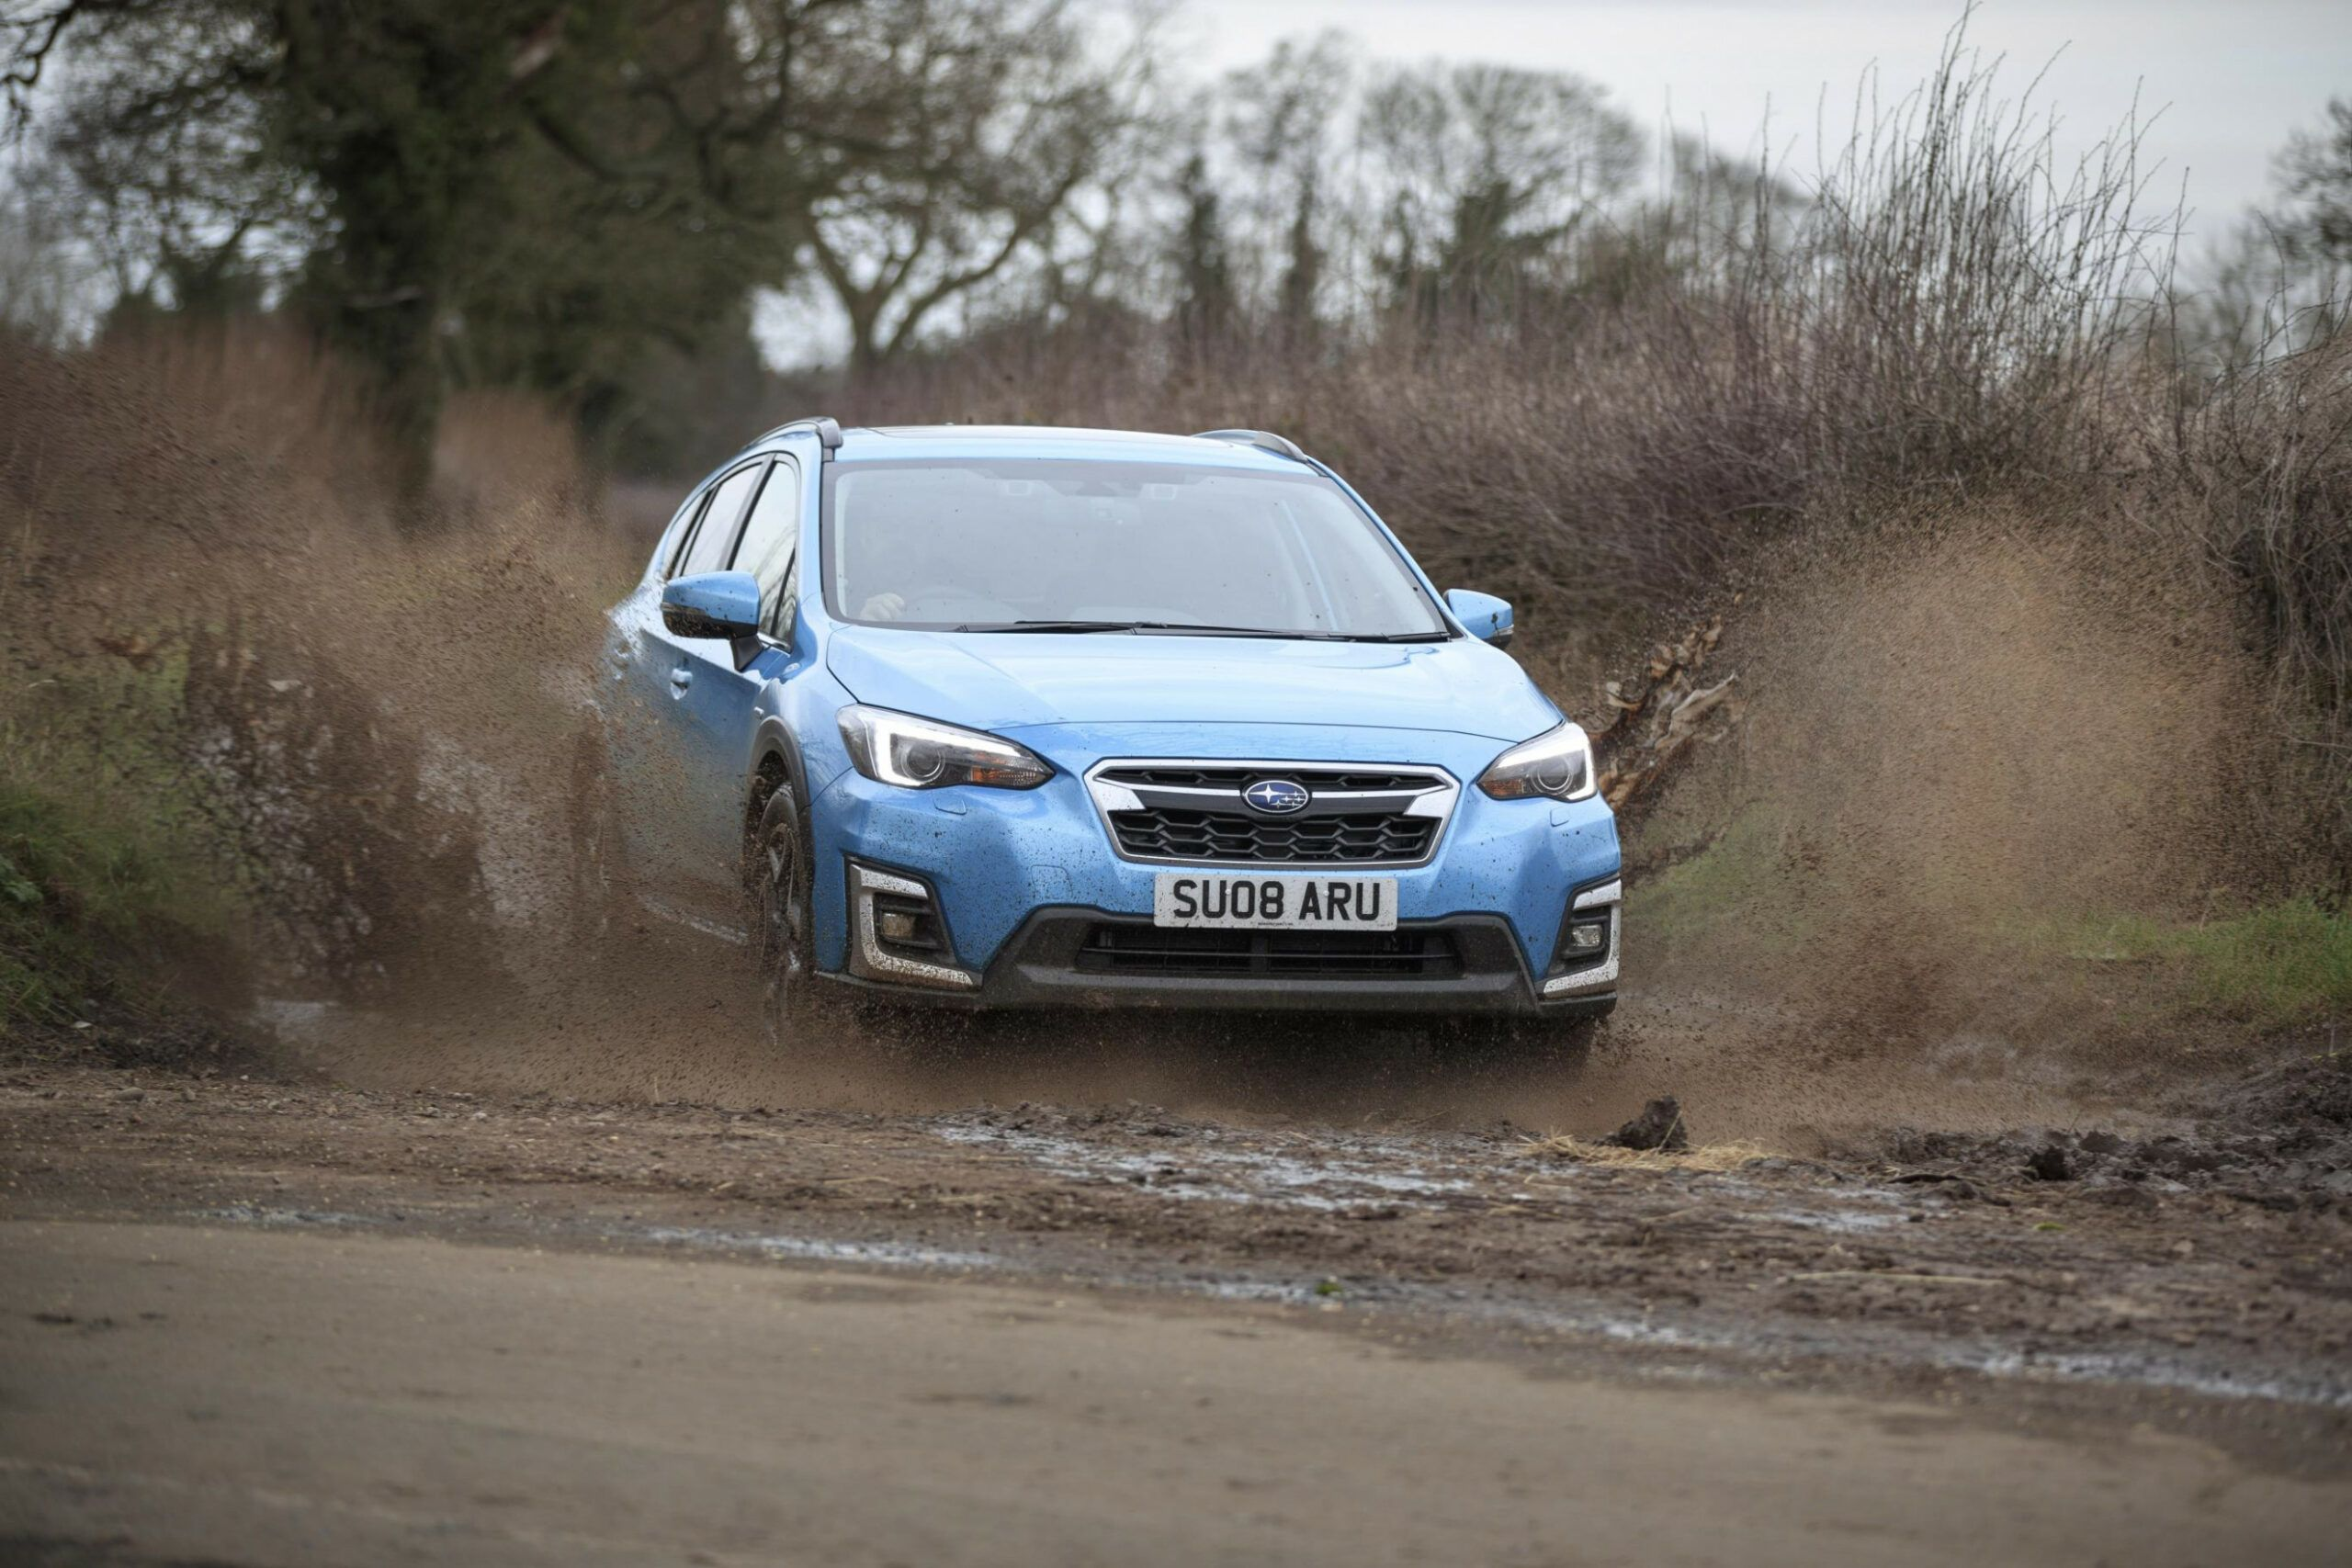 2020 Subaru Crosstrek Uk In 2020 Subaru Crosstrek Subaru Subaru Models